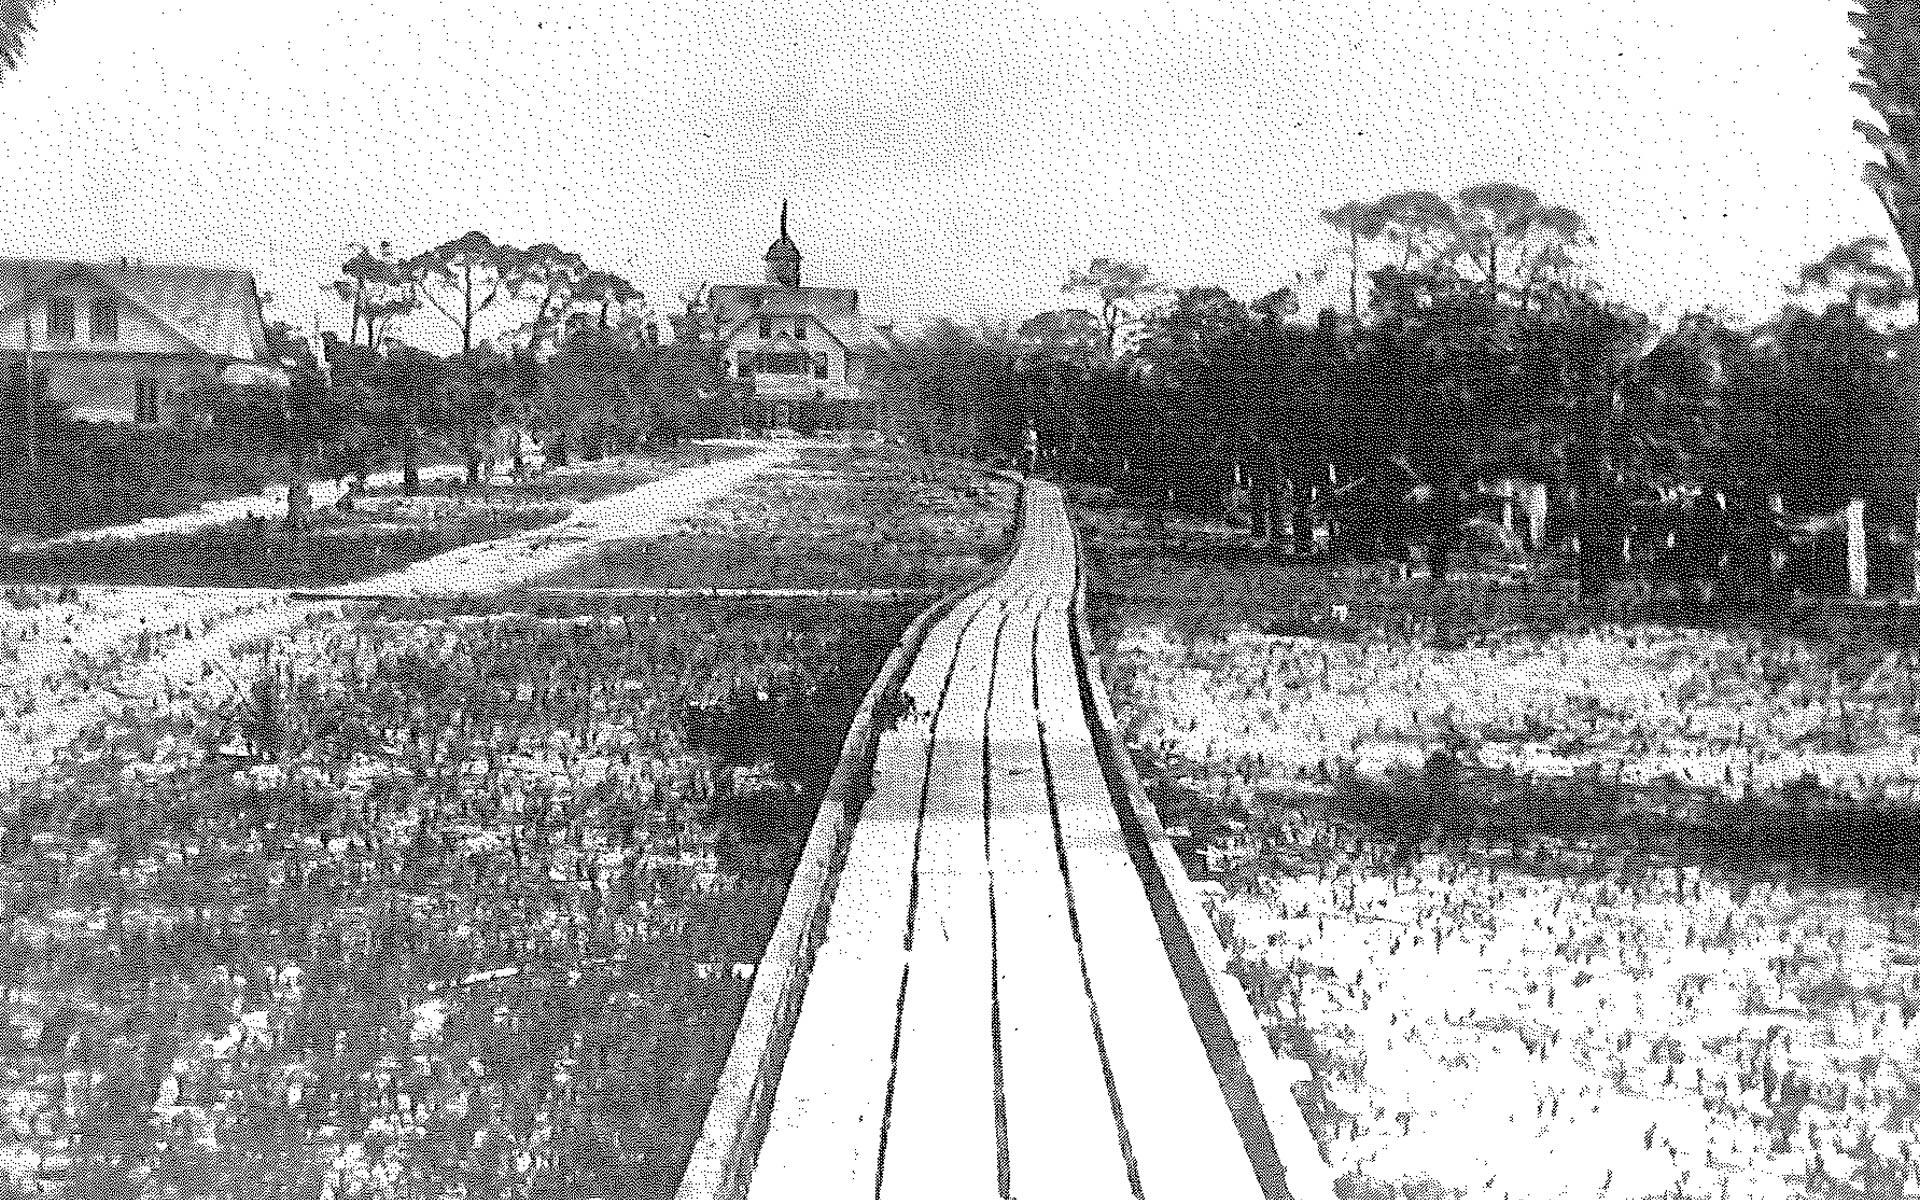 The Old Naples Hotel from the west showing the pathway over which people, luggage and supplies came to and went from the Naples Pier. Circa 1920's.